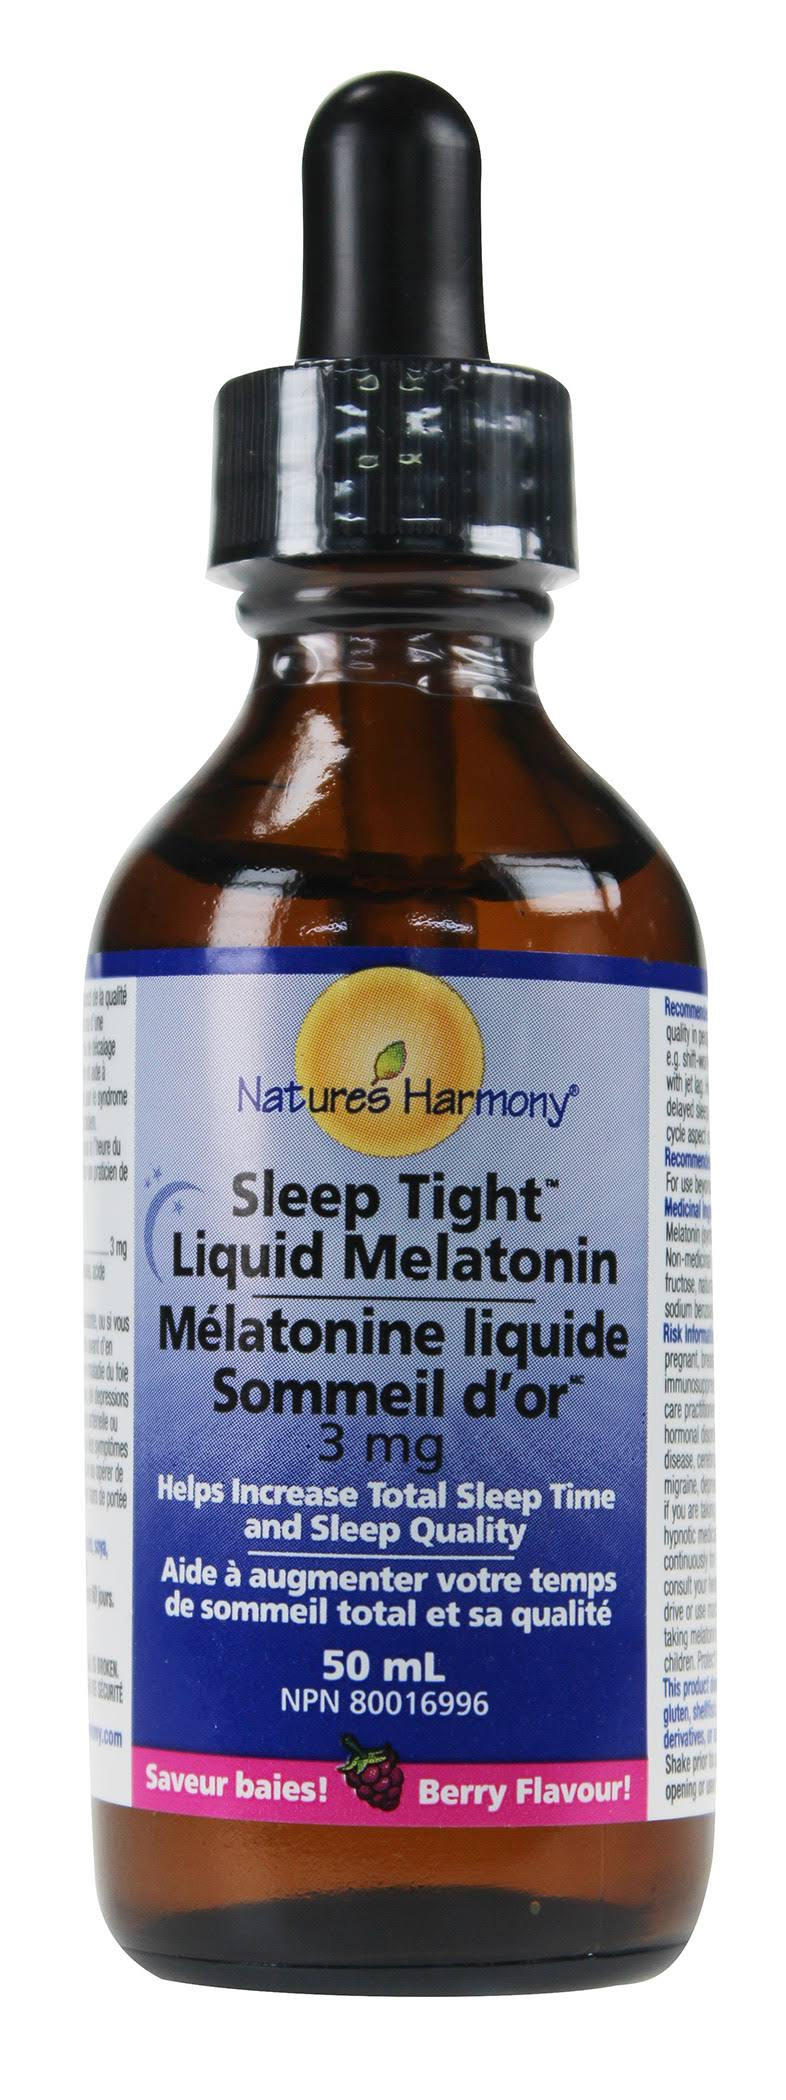 Nature's Harmony Sleep Tight Melatonin Liquid Drops